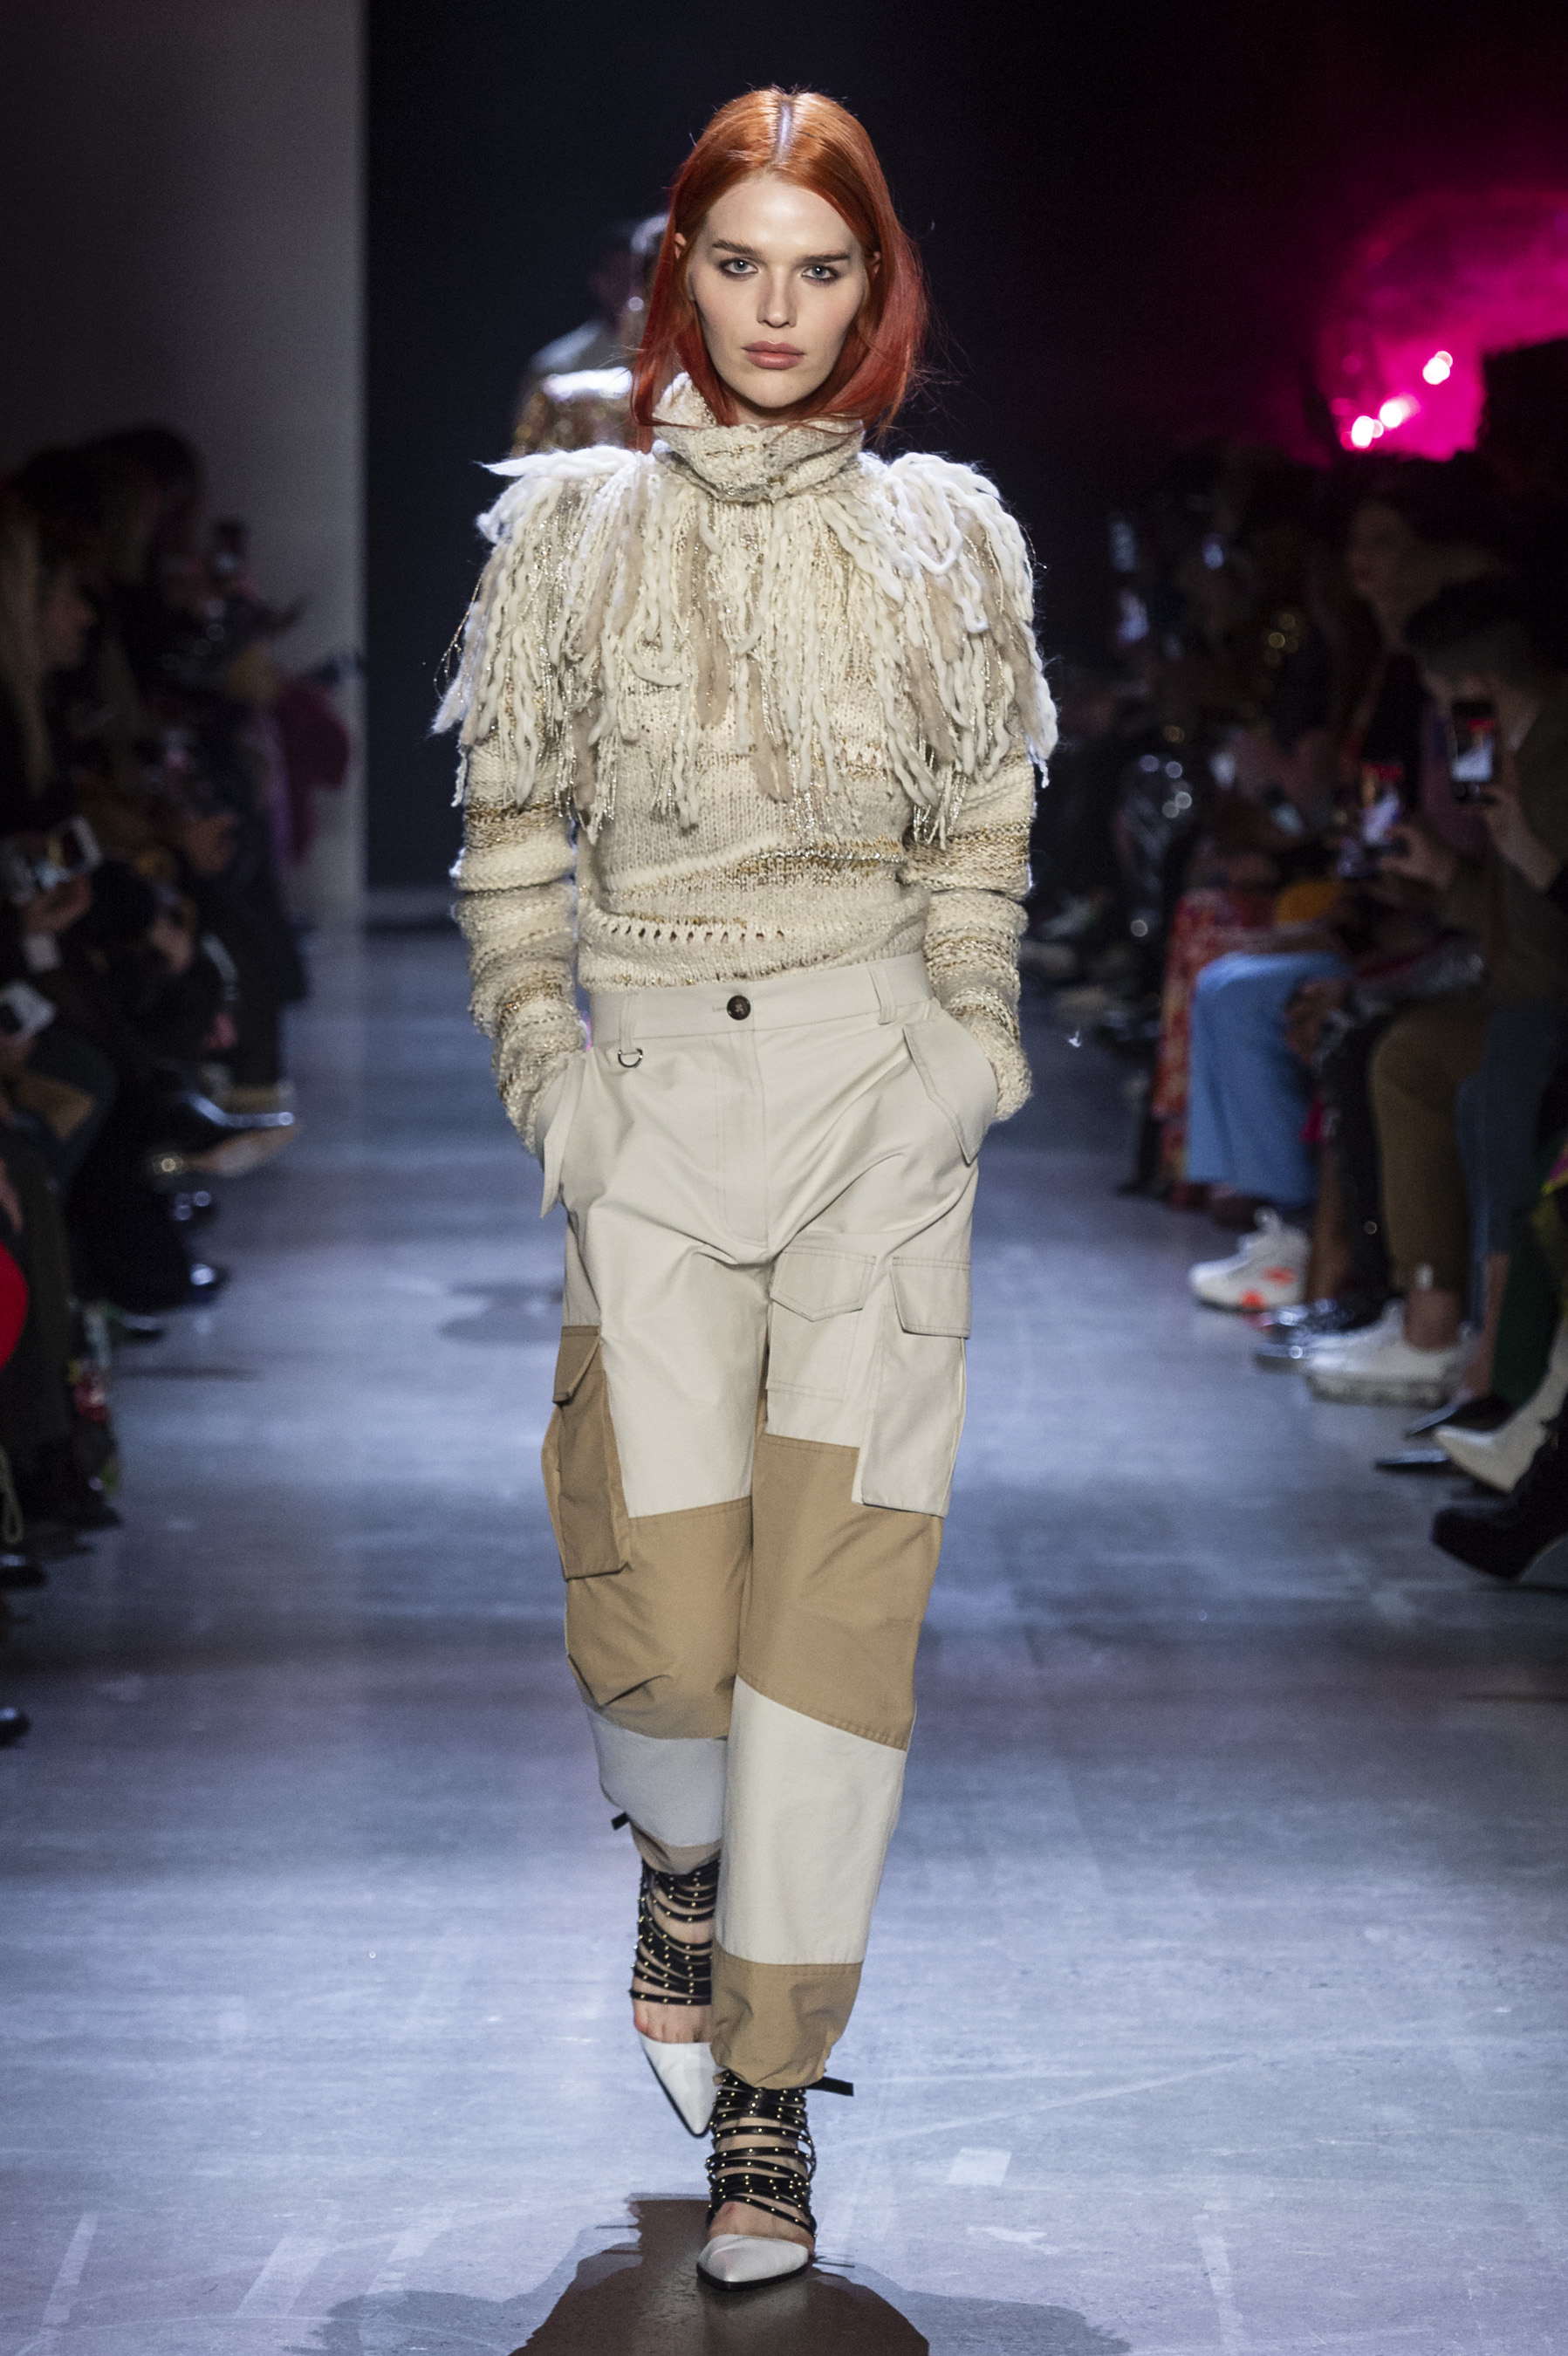 New York Top 10 'Other' Fall 2019 Fashion Shows